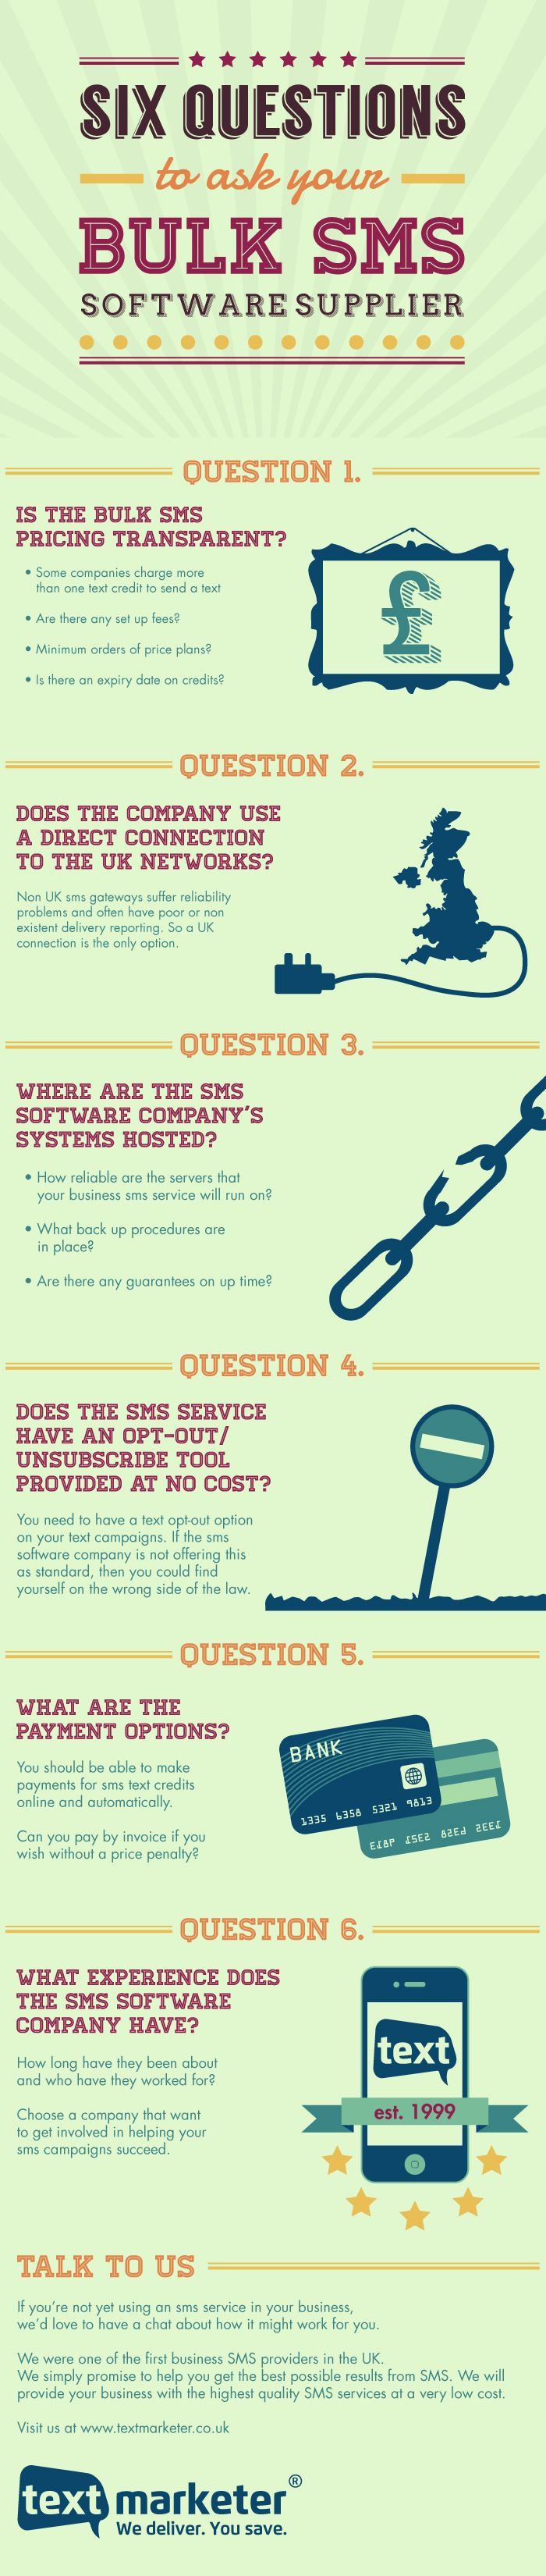 Six Questions To Ask Your Bulk SMS Software Supplier [INFOGRAPHIC] #SMS#software